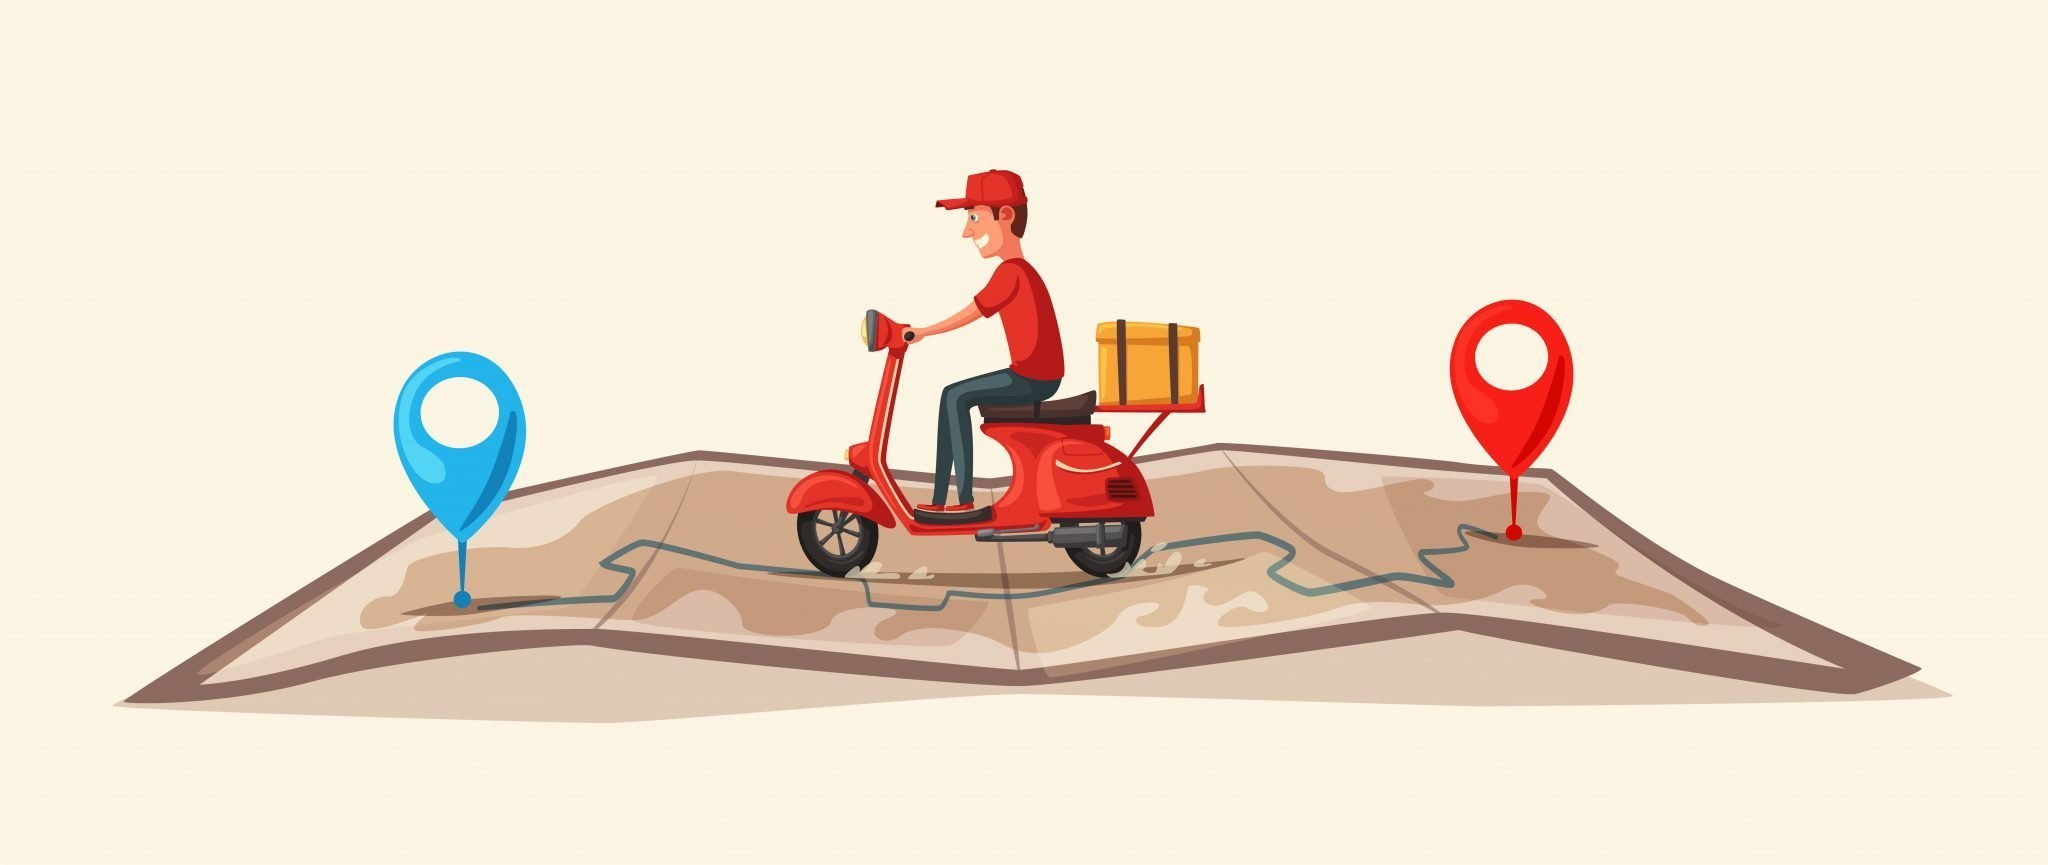 4 Questions You Should Ask Before Jumping Into The World of 3rd Party Delivery Apps